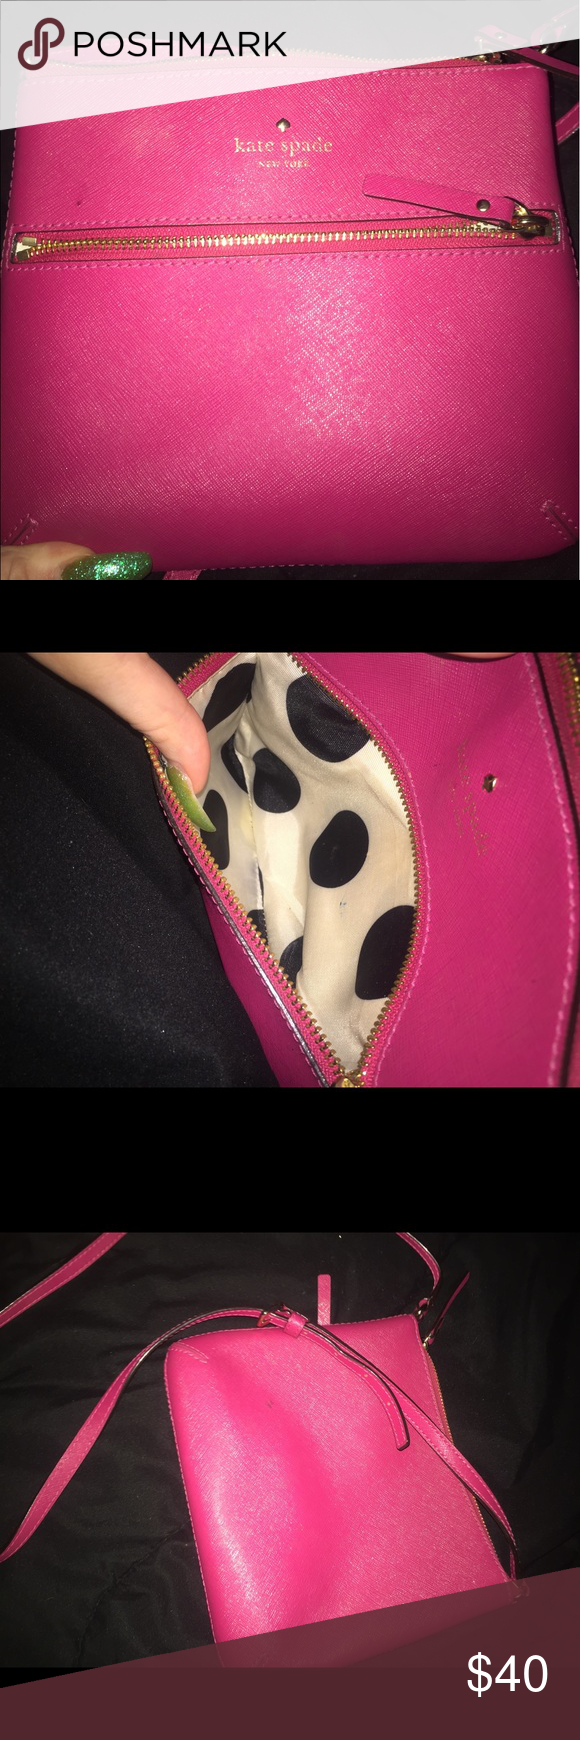 PINK KATE SPADE CROSSBODY Beautiful pink Kate Spade bad is perfect for the spring and can make any outfit. kate spade Bags Crossbody Bags